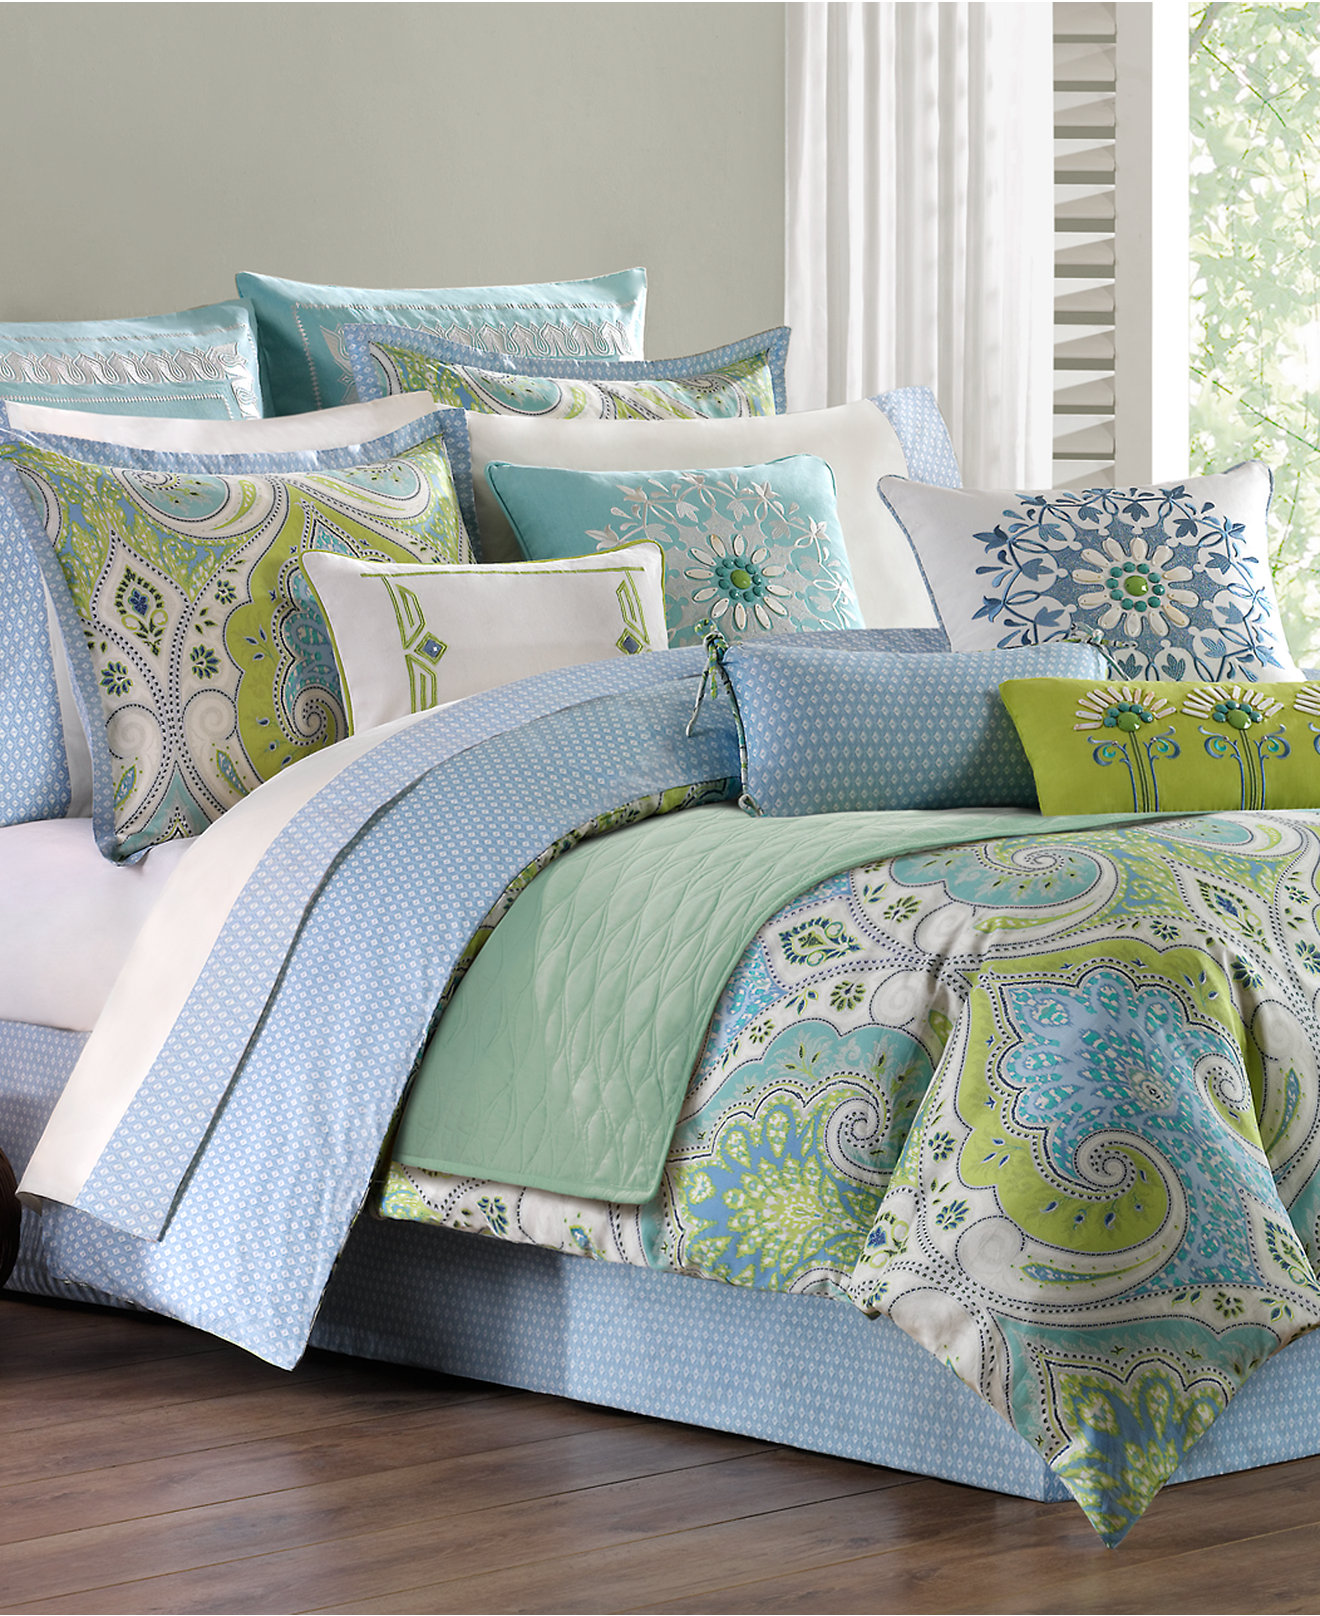 This Duvet Cover Set adds a timeless yet modern look to any bedroom. Reversible design gives a new look every time you make your bed. The bedding set features an impressive pattern on one side, which coordinates with a variety of styles in your bedroom.